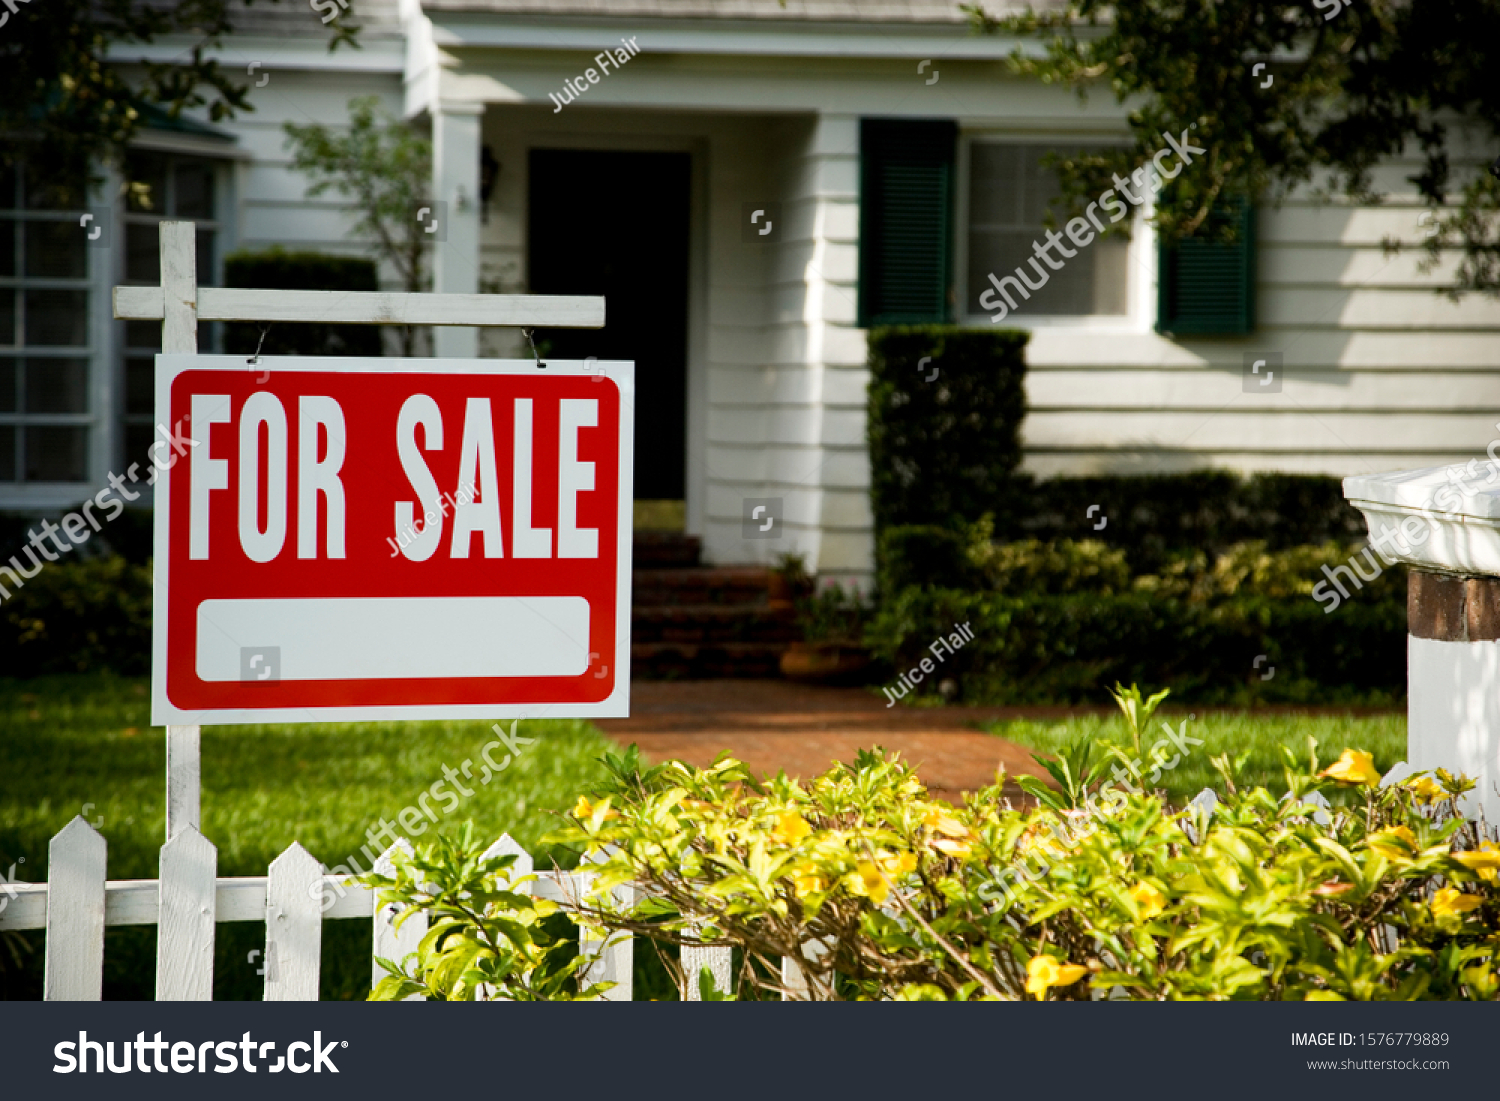 For sale sign outside a family house #1576779889